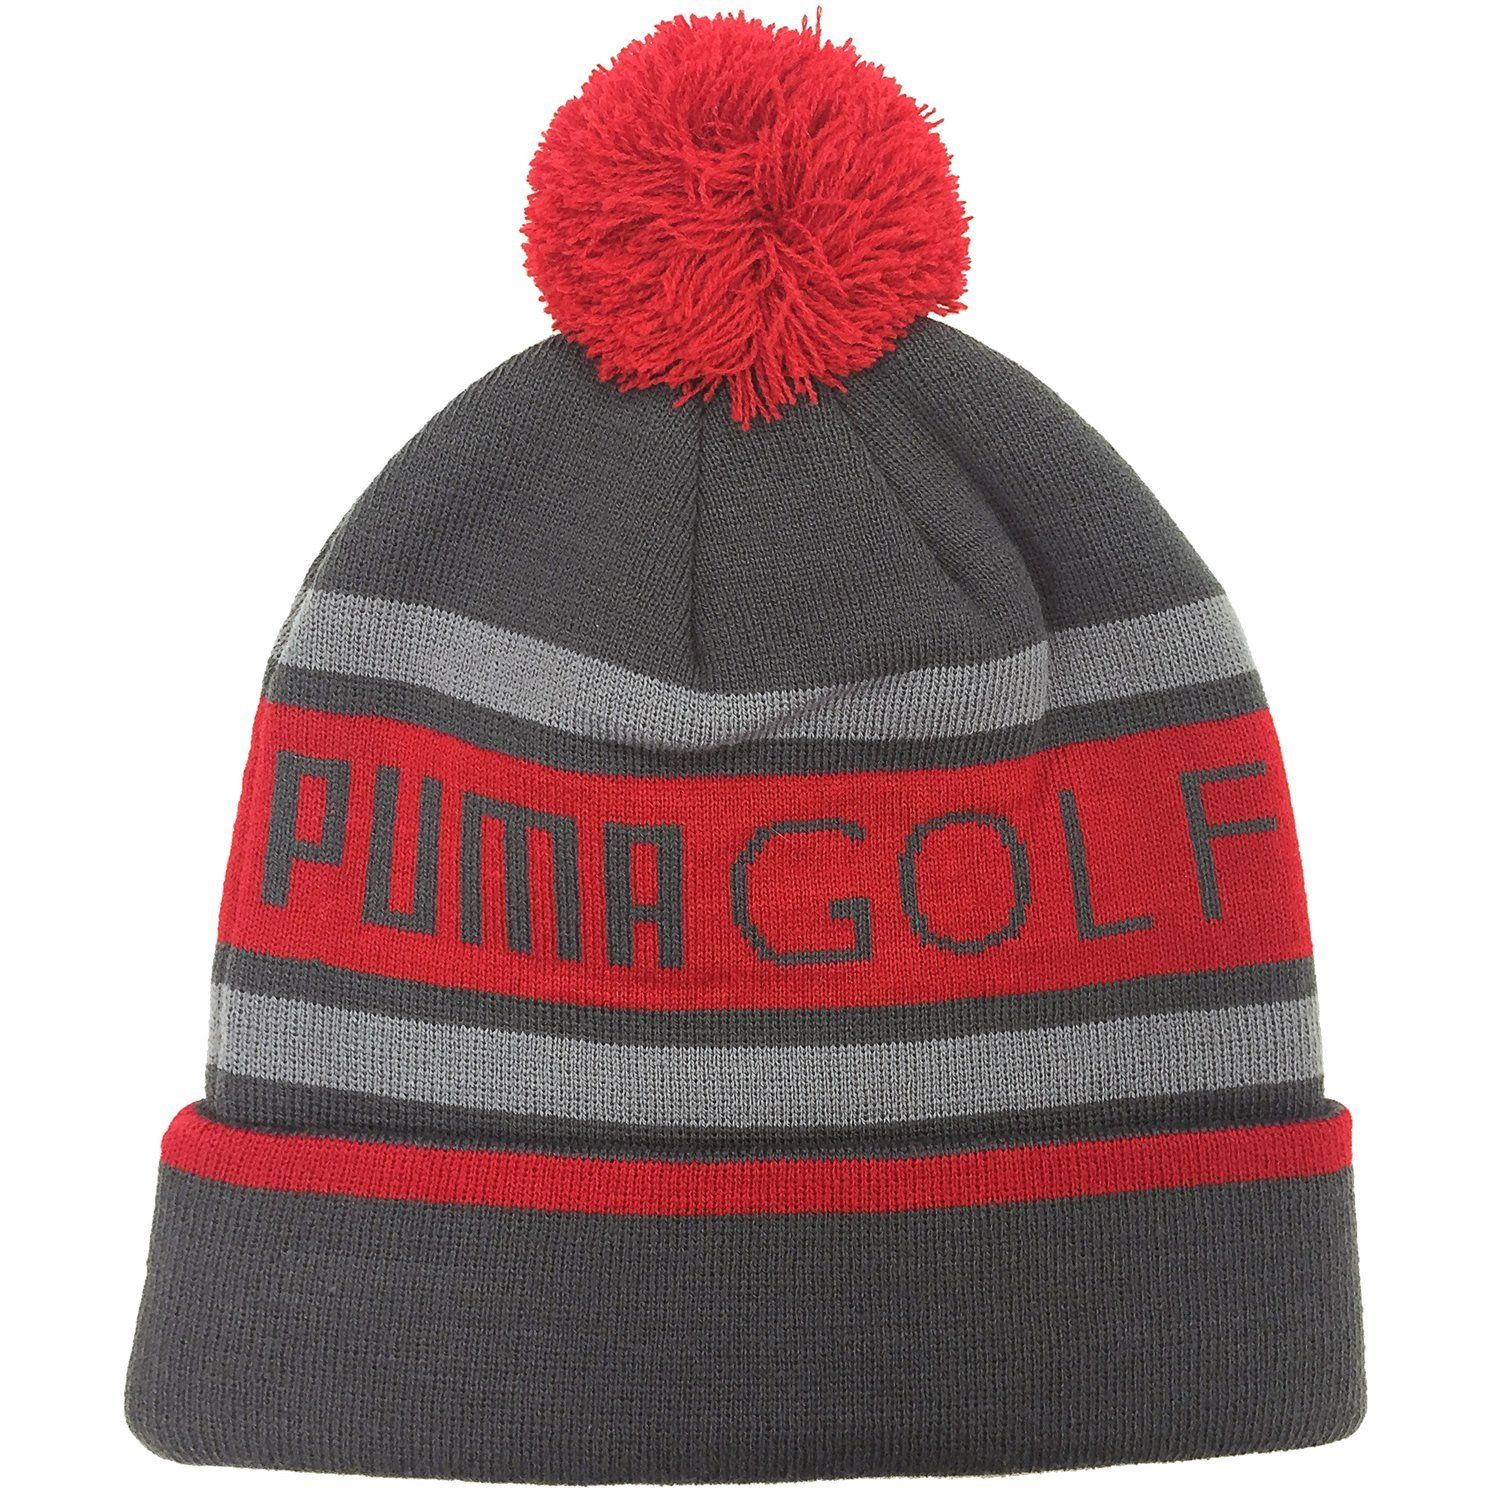 Constructed using warm knit materials thes mens pom golf beanie bobble hats  by Puma will ensure a2eeeafcae2